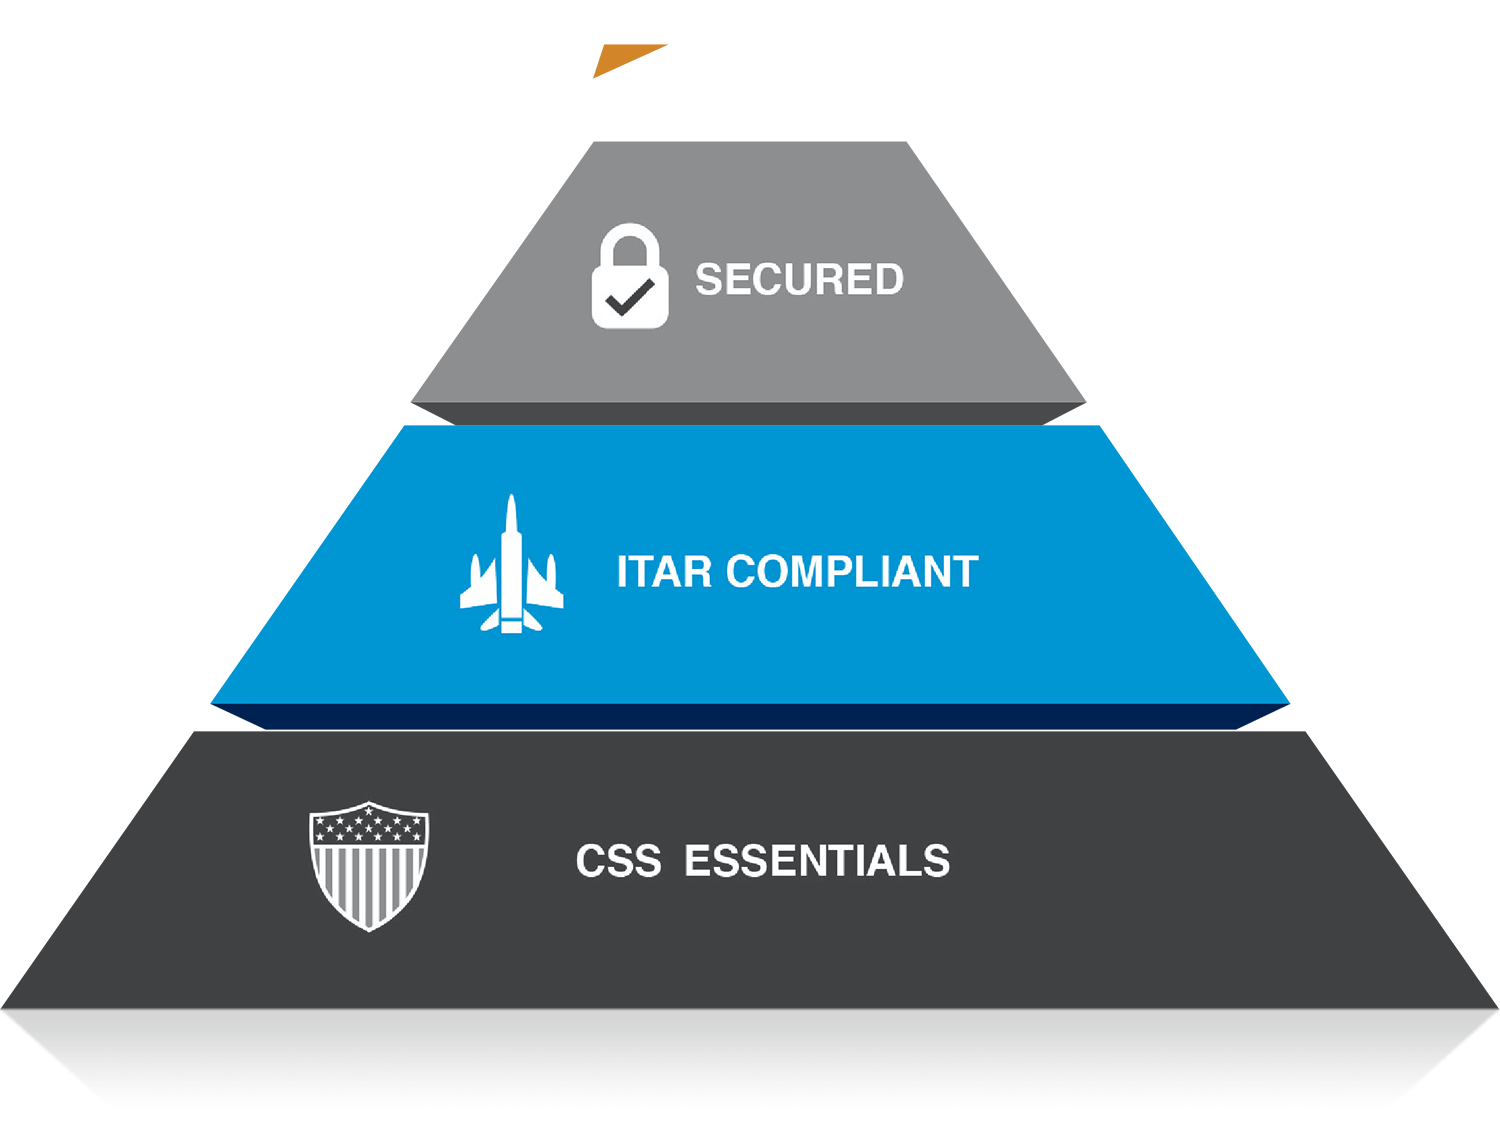 Second level of CSS Pyramid highlighted: ITAR Compliance